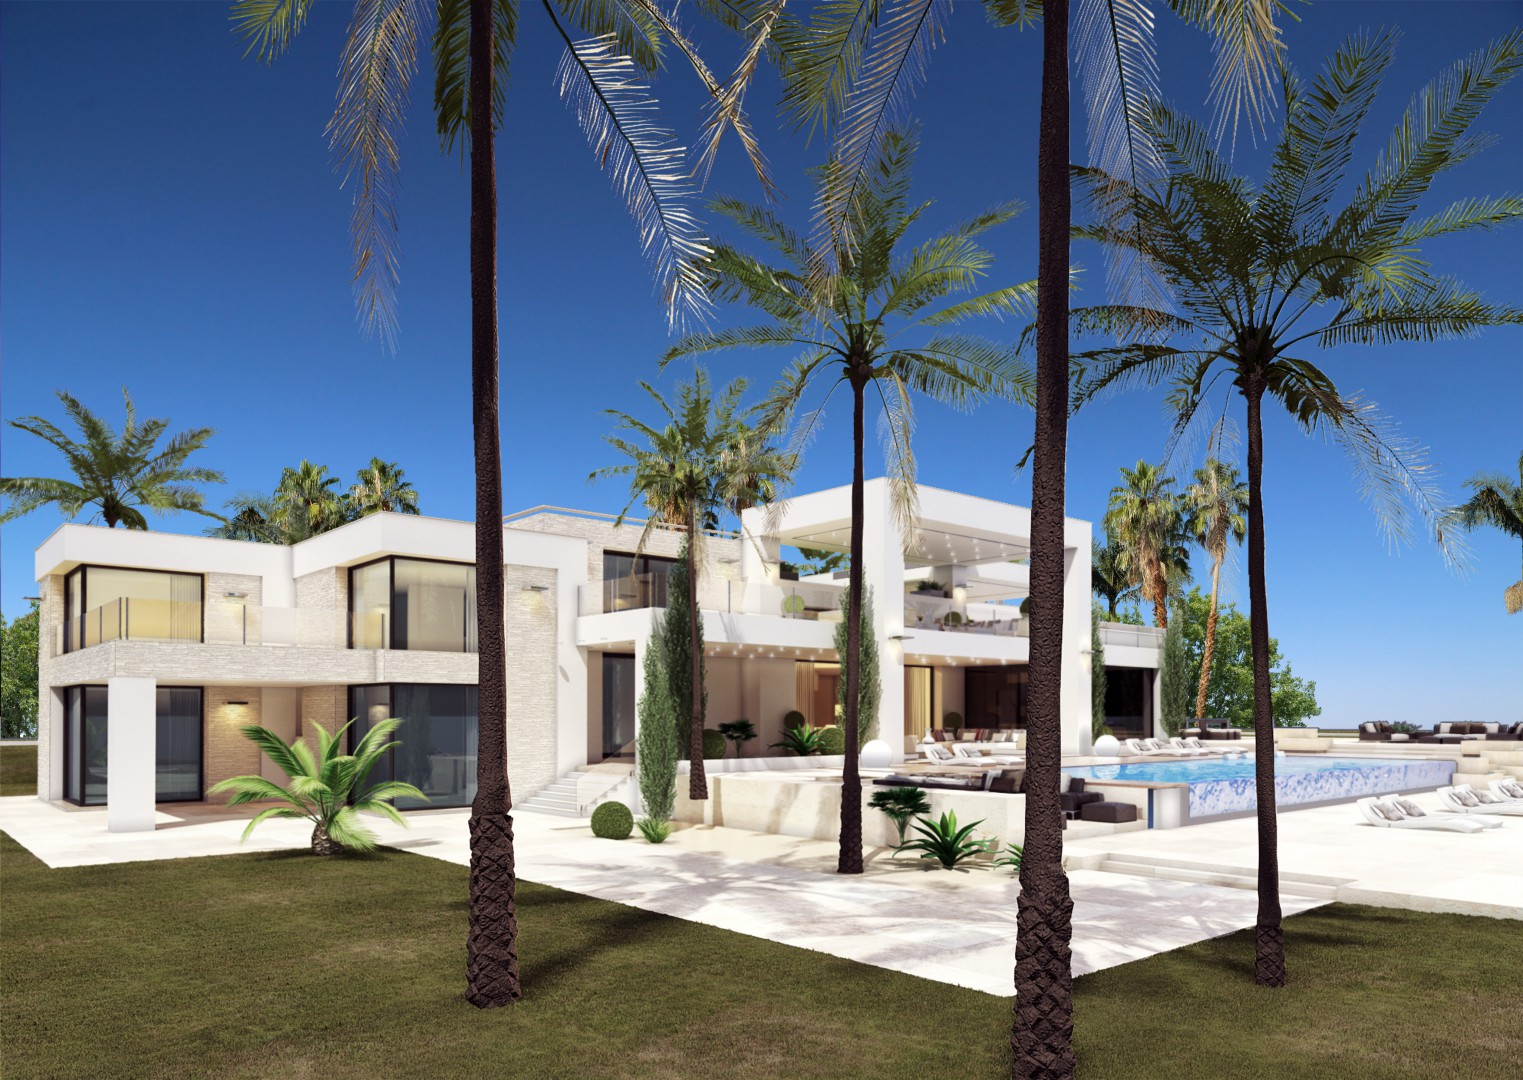 Single Family Home for Sale at A truly jewel of villa at beachfront New Golden Mile Estepona, Costa Del Sol 29680 Spain